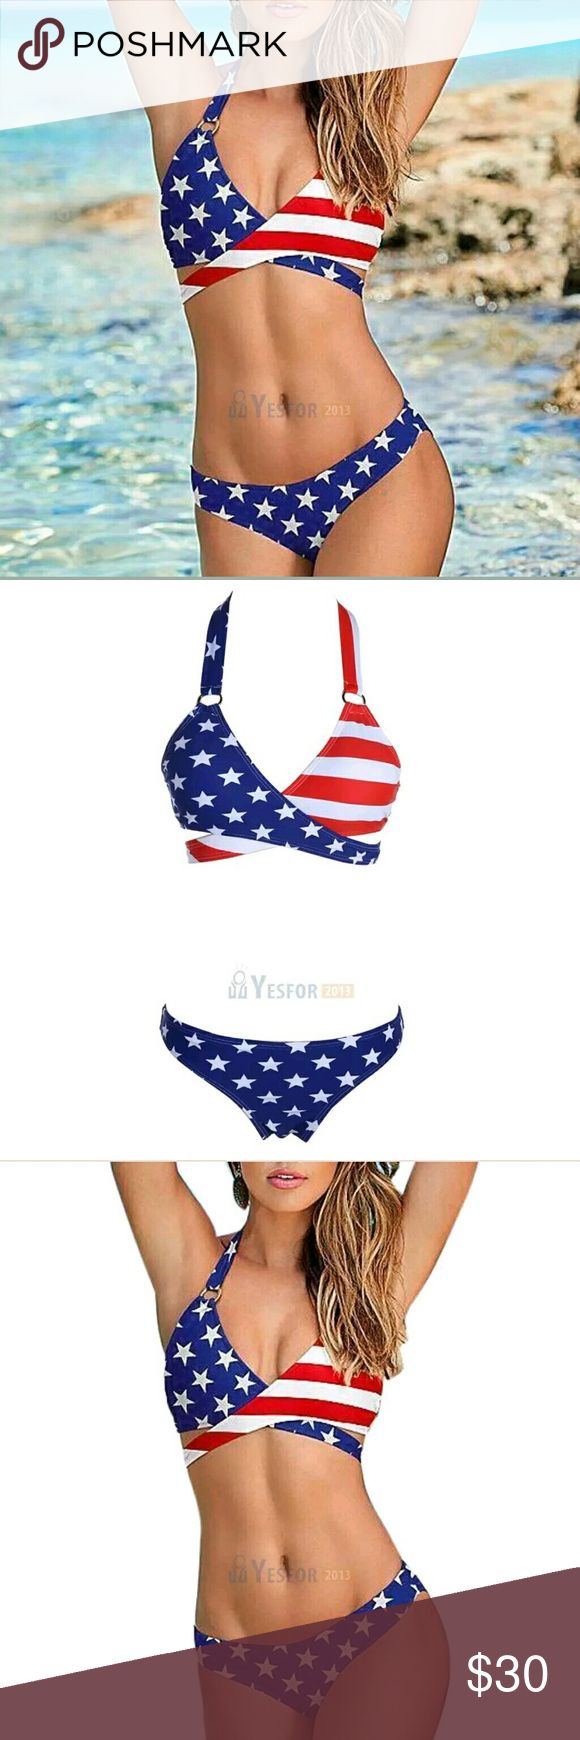 red striped bikini die besten 25 blue striped flag ideen auf pinterest 7920